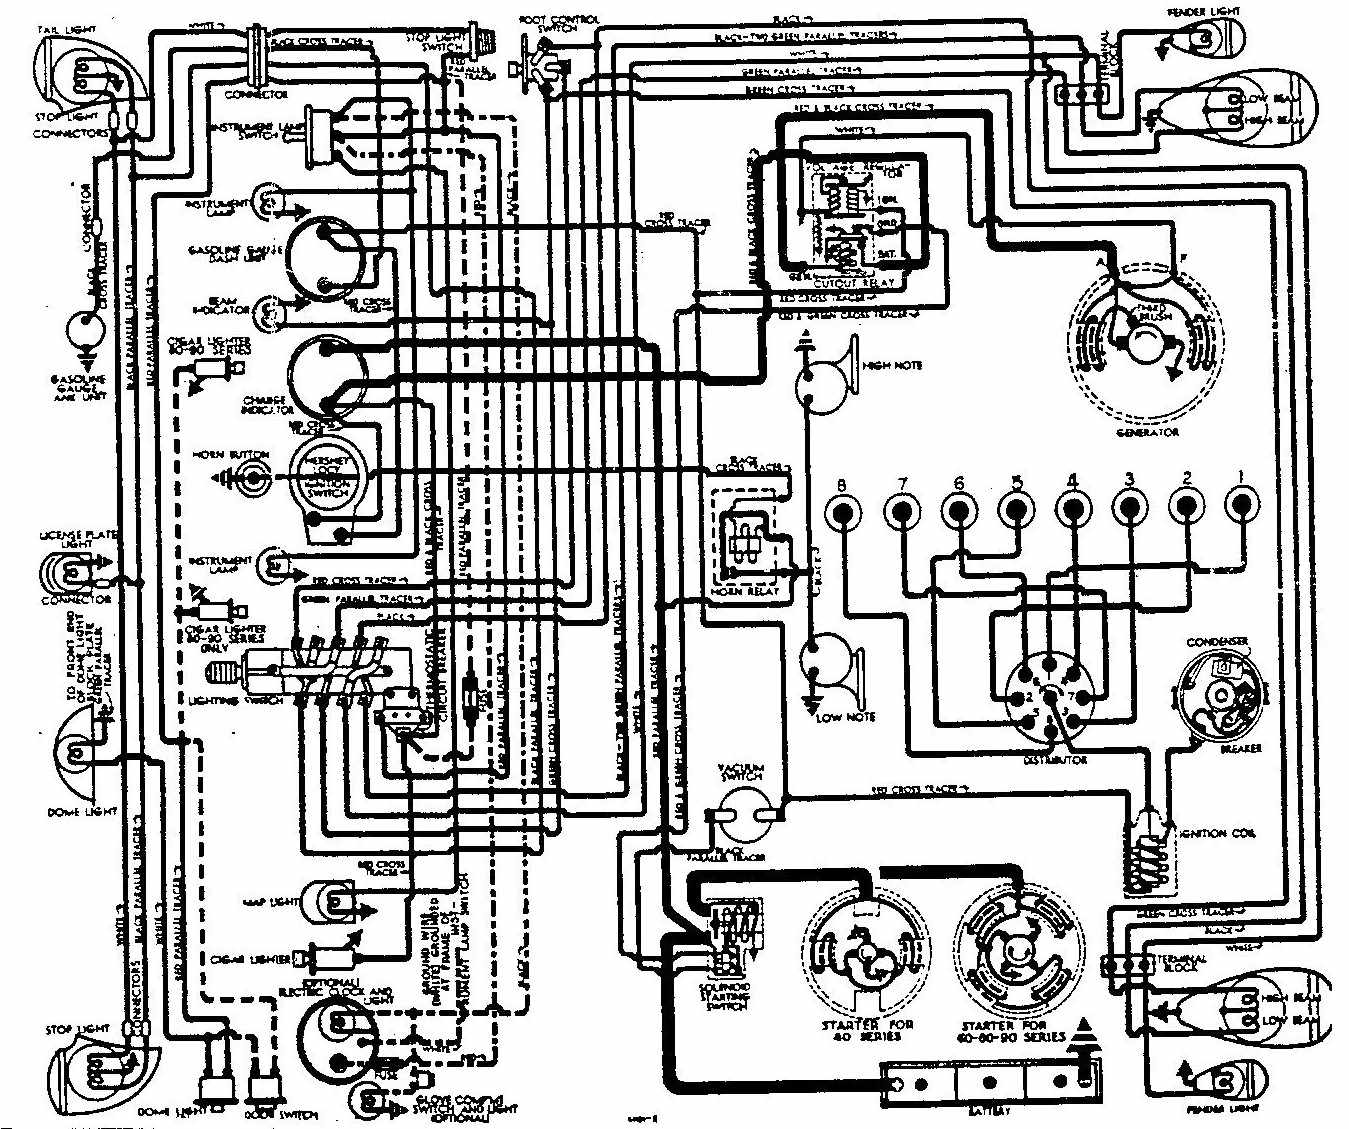 1938 Chevrolet Wiring Diagram Portal 1961 Chevy Buick Roadmaster Electrical All About Rh Diagramonwiring Blogspot Com Schematics